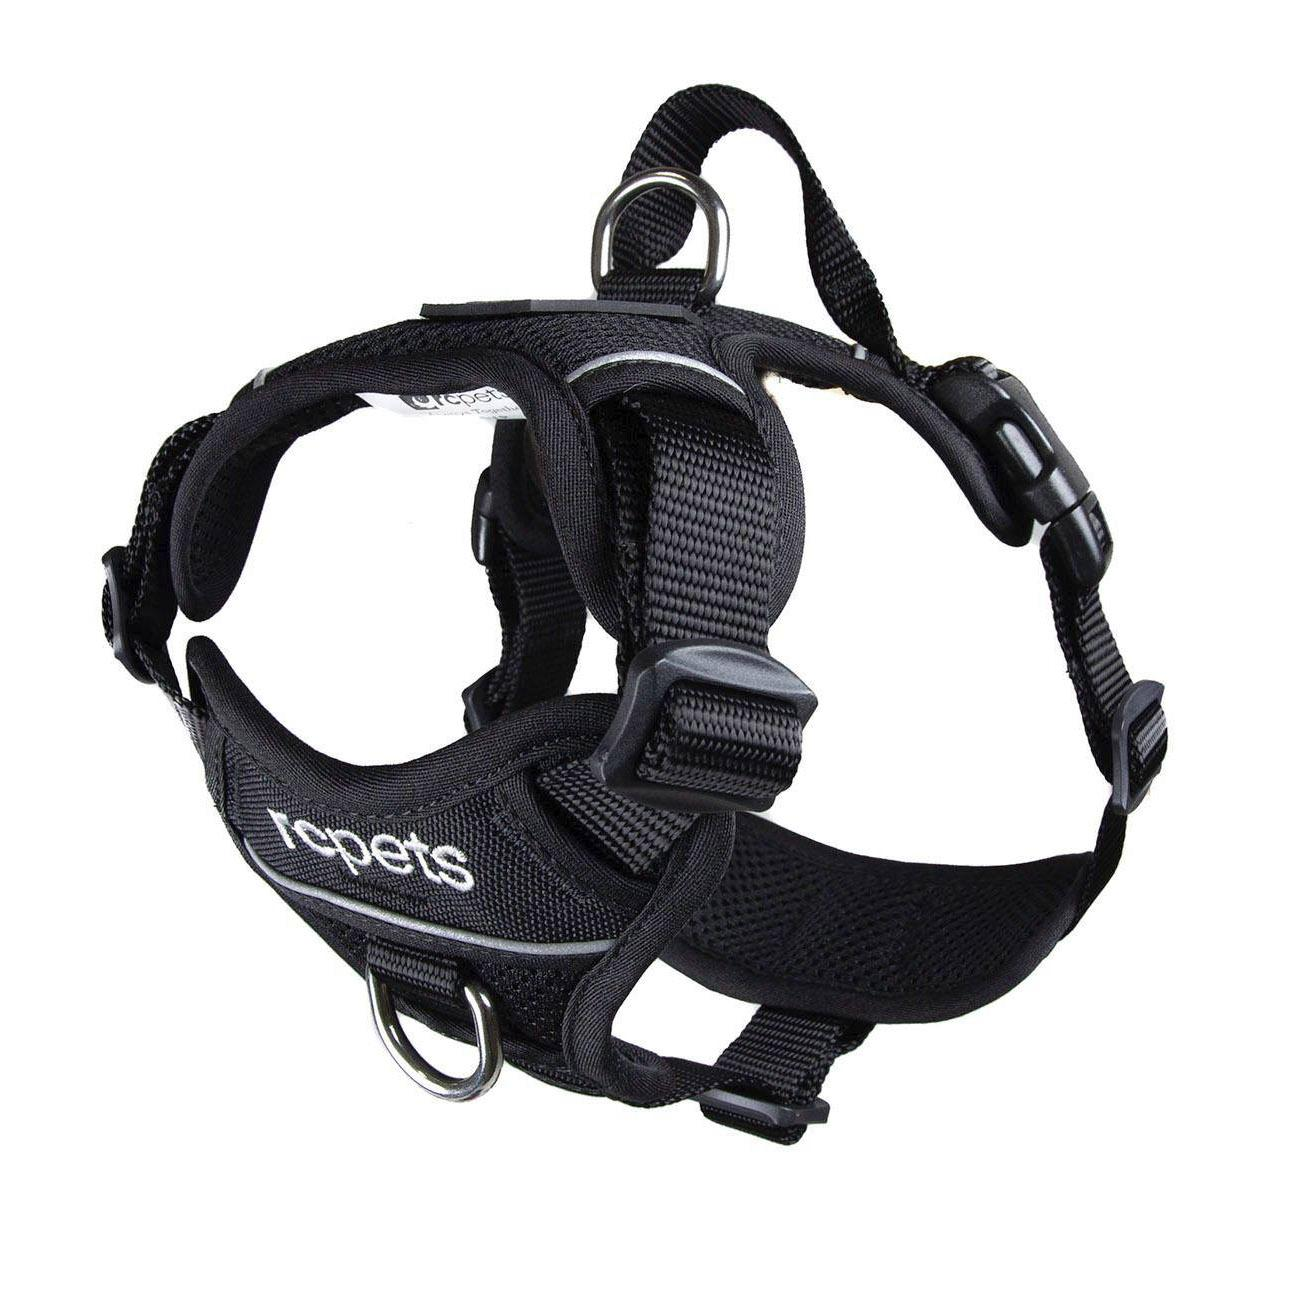 RC Pet Products Momentum Control Dog Harness, Black, X-Large